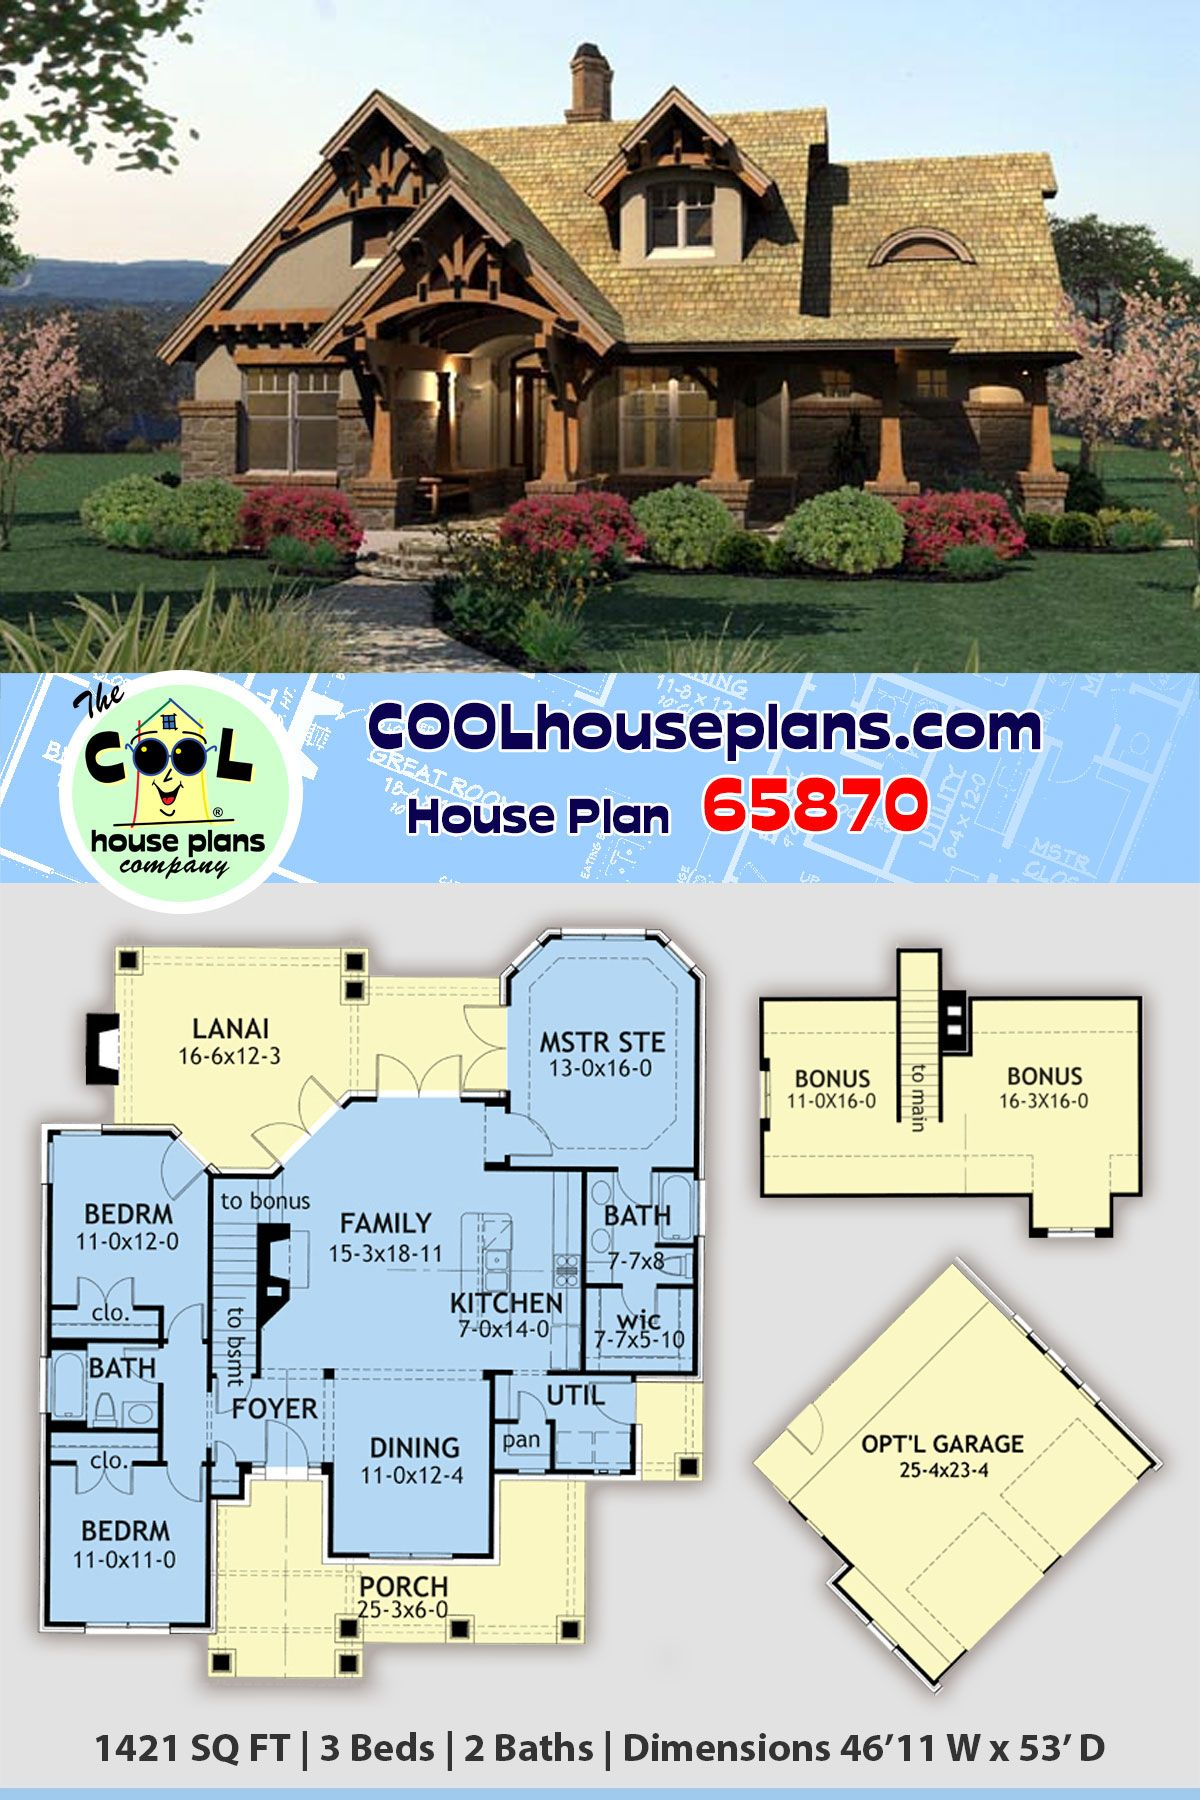 Tuscan Style House Plan 65870 With 3 Bed 2 Bath 2 Car Garage In 2020 Tuscan House Plans House Plans Porch House Plans